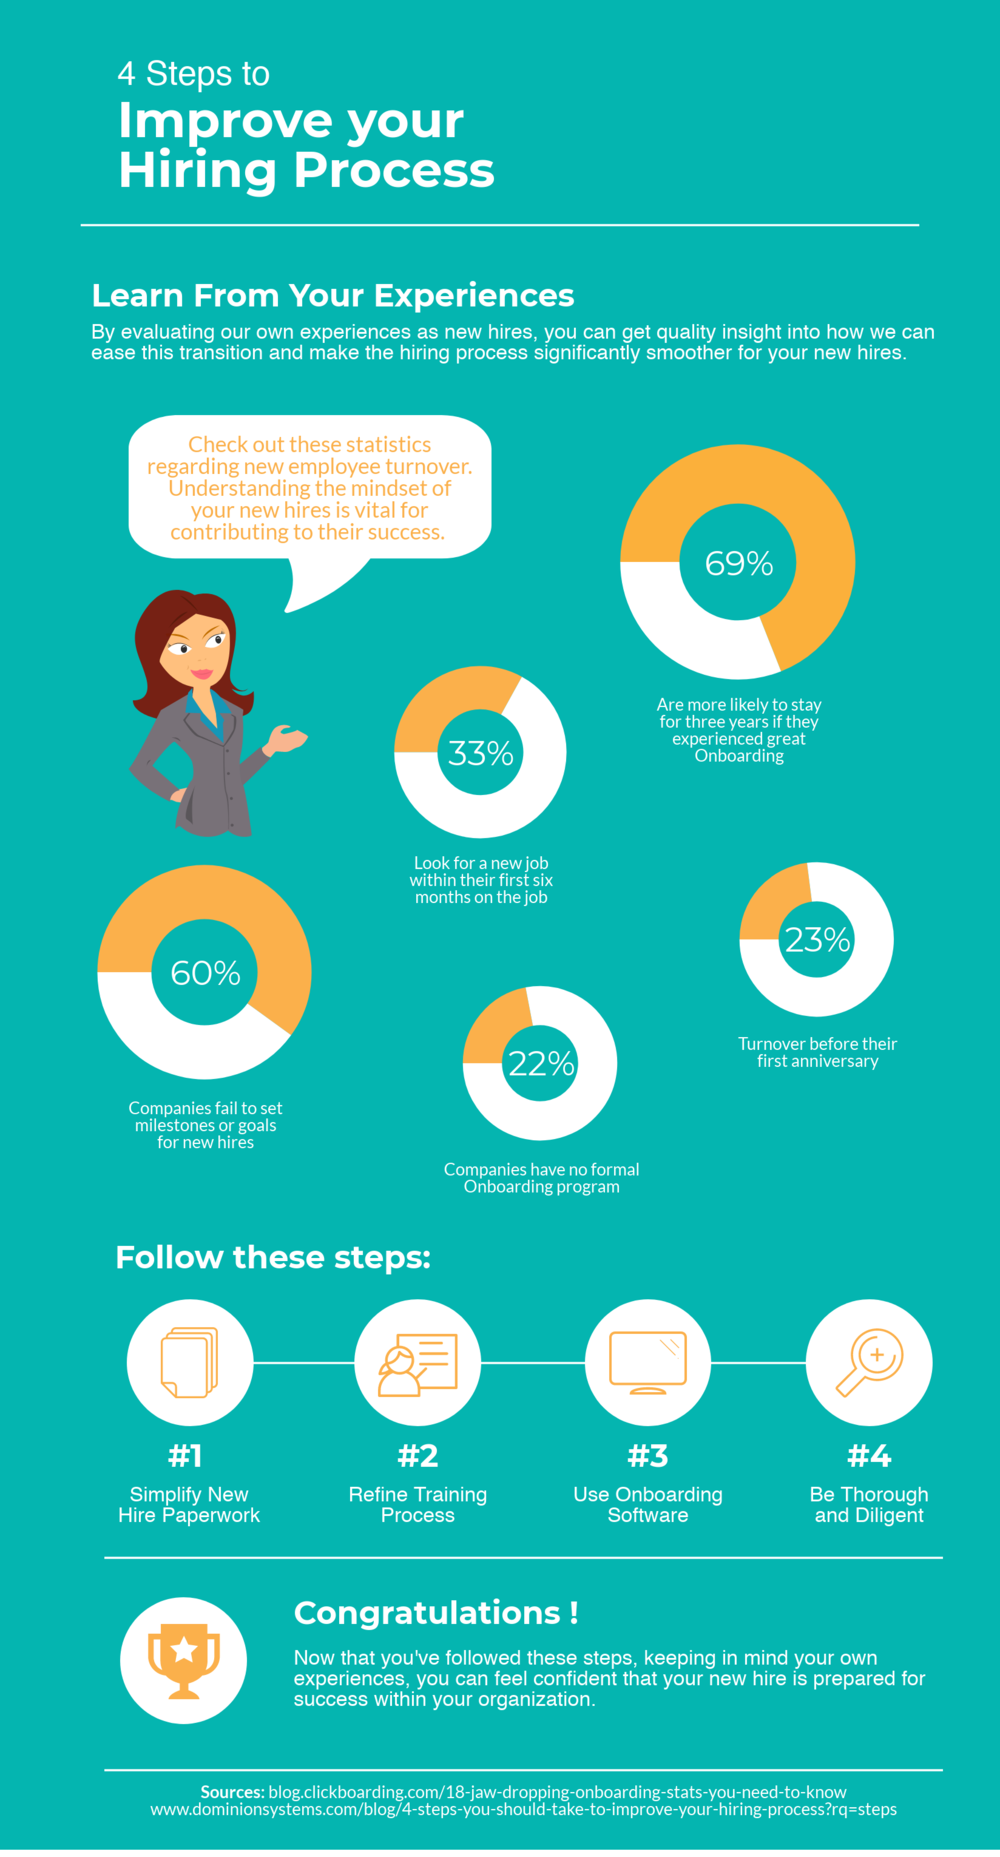 4_Steps_to_Improve_Your_Hiring_Process